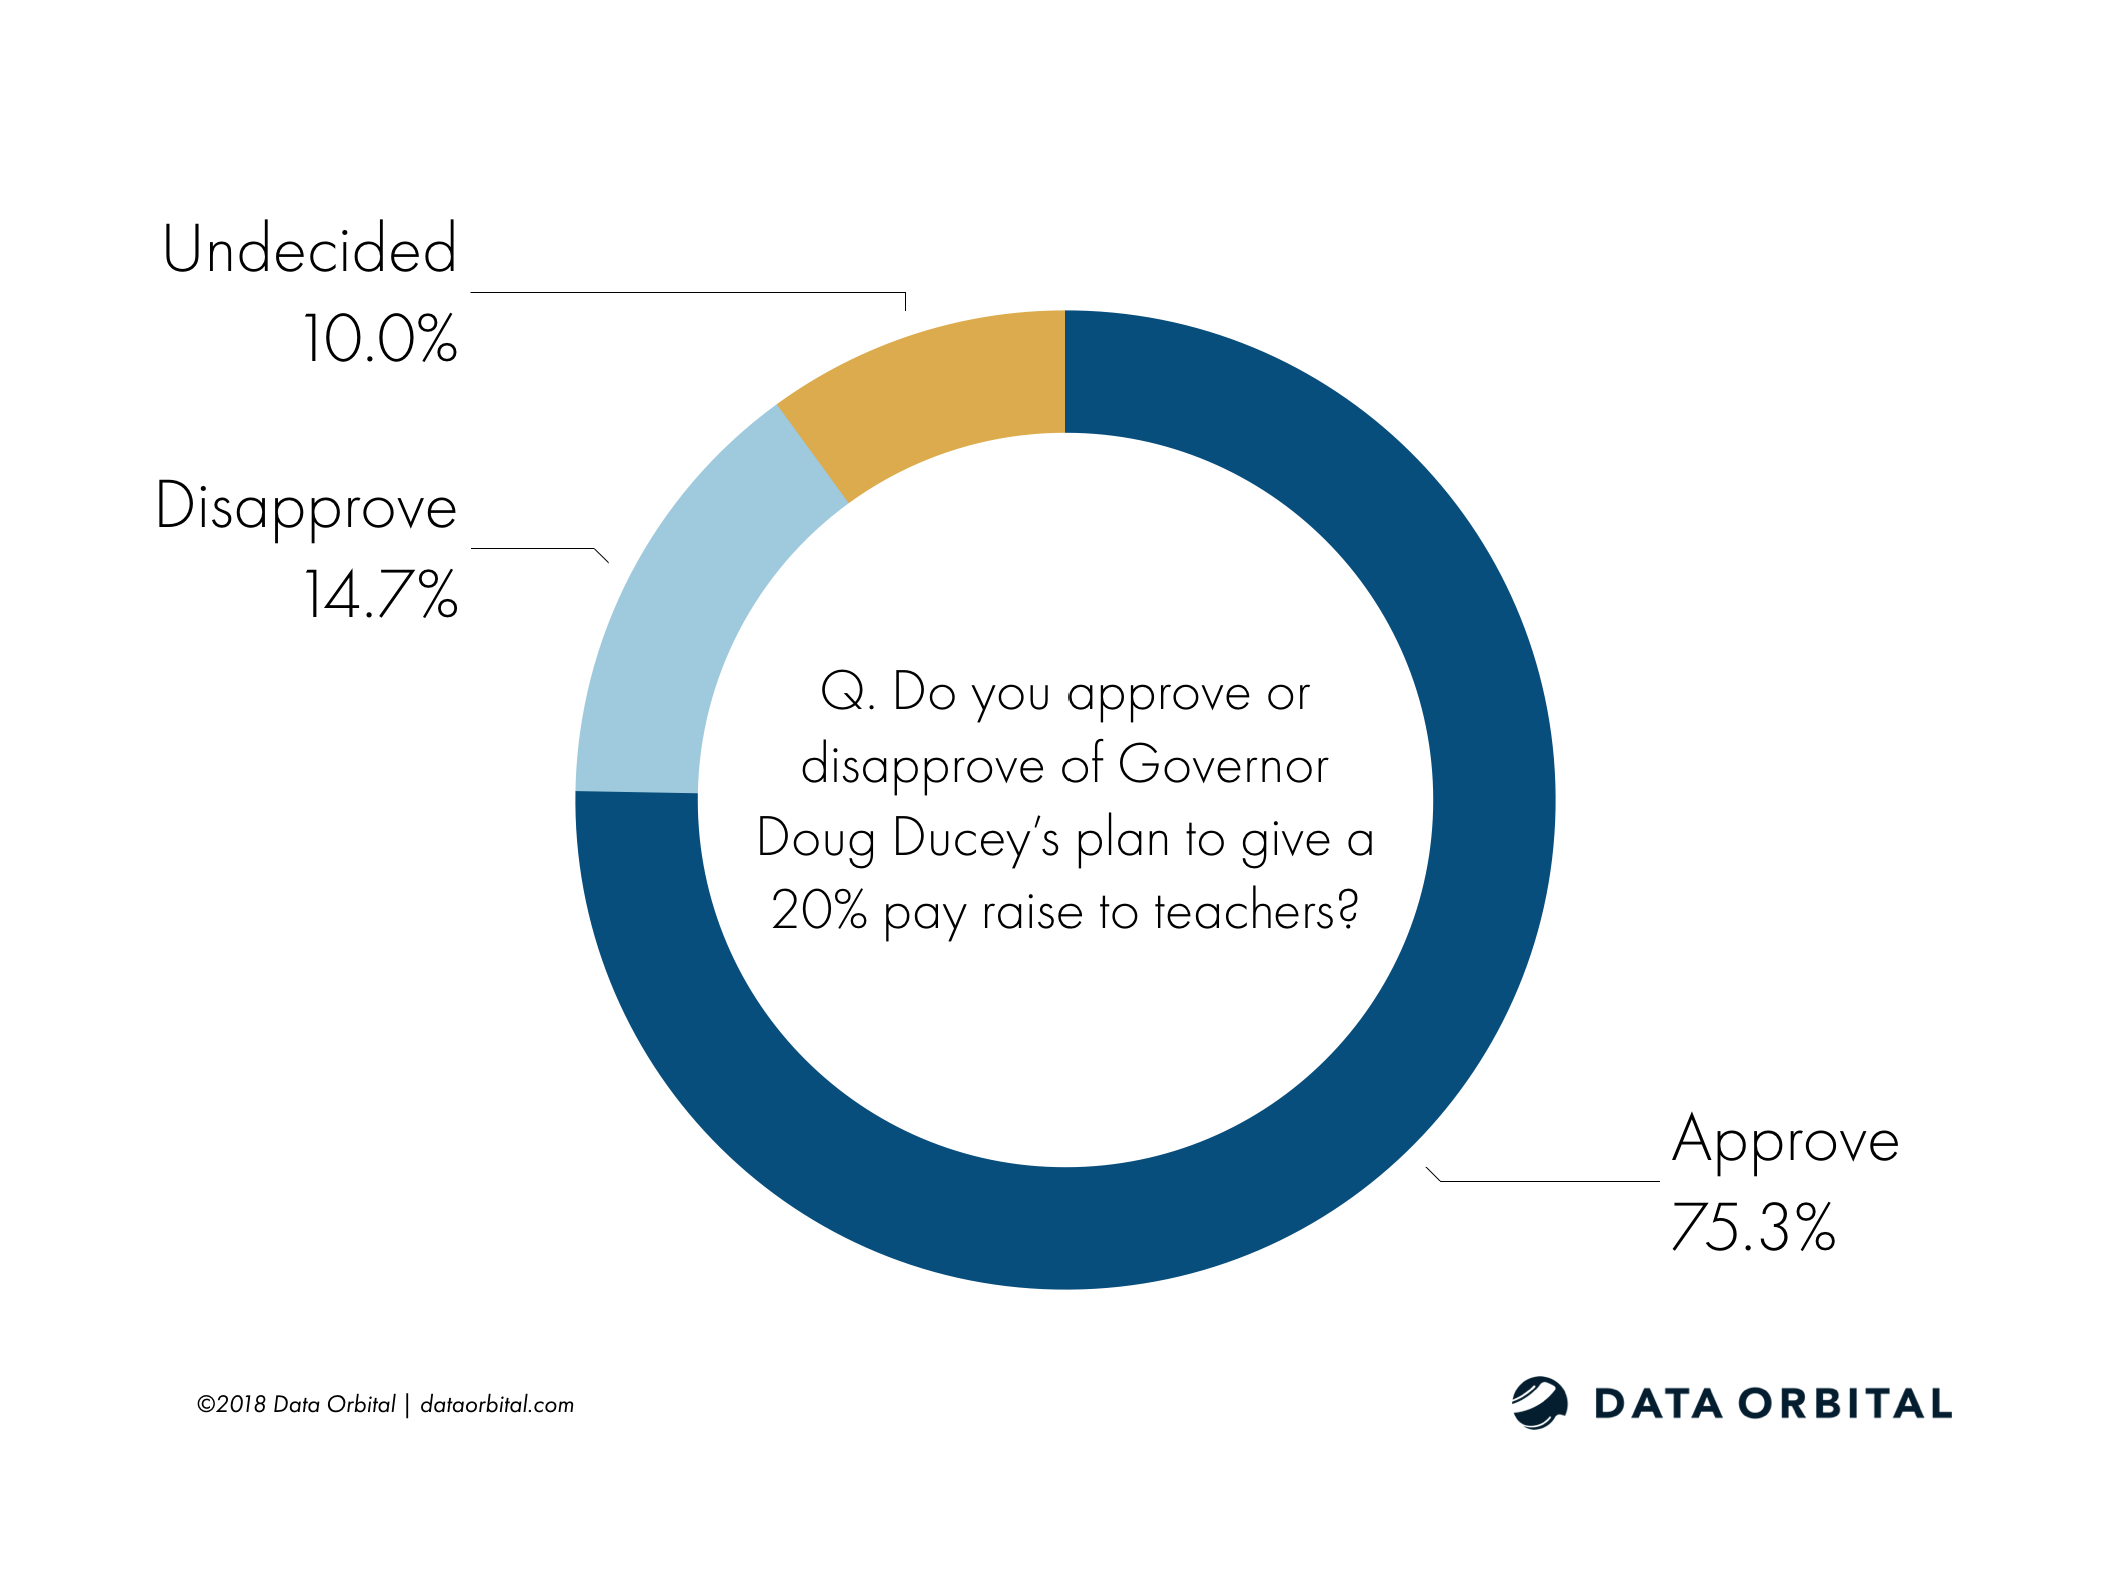 Arizona Education Poll Q. Do you approve or disapprove of Governor Doug Ducey's plan to give a 20% pay raise to teachers?